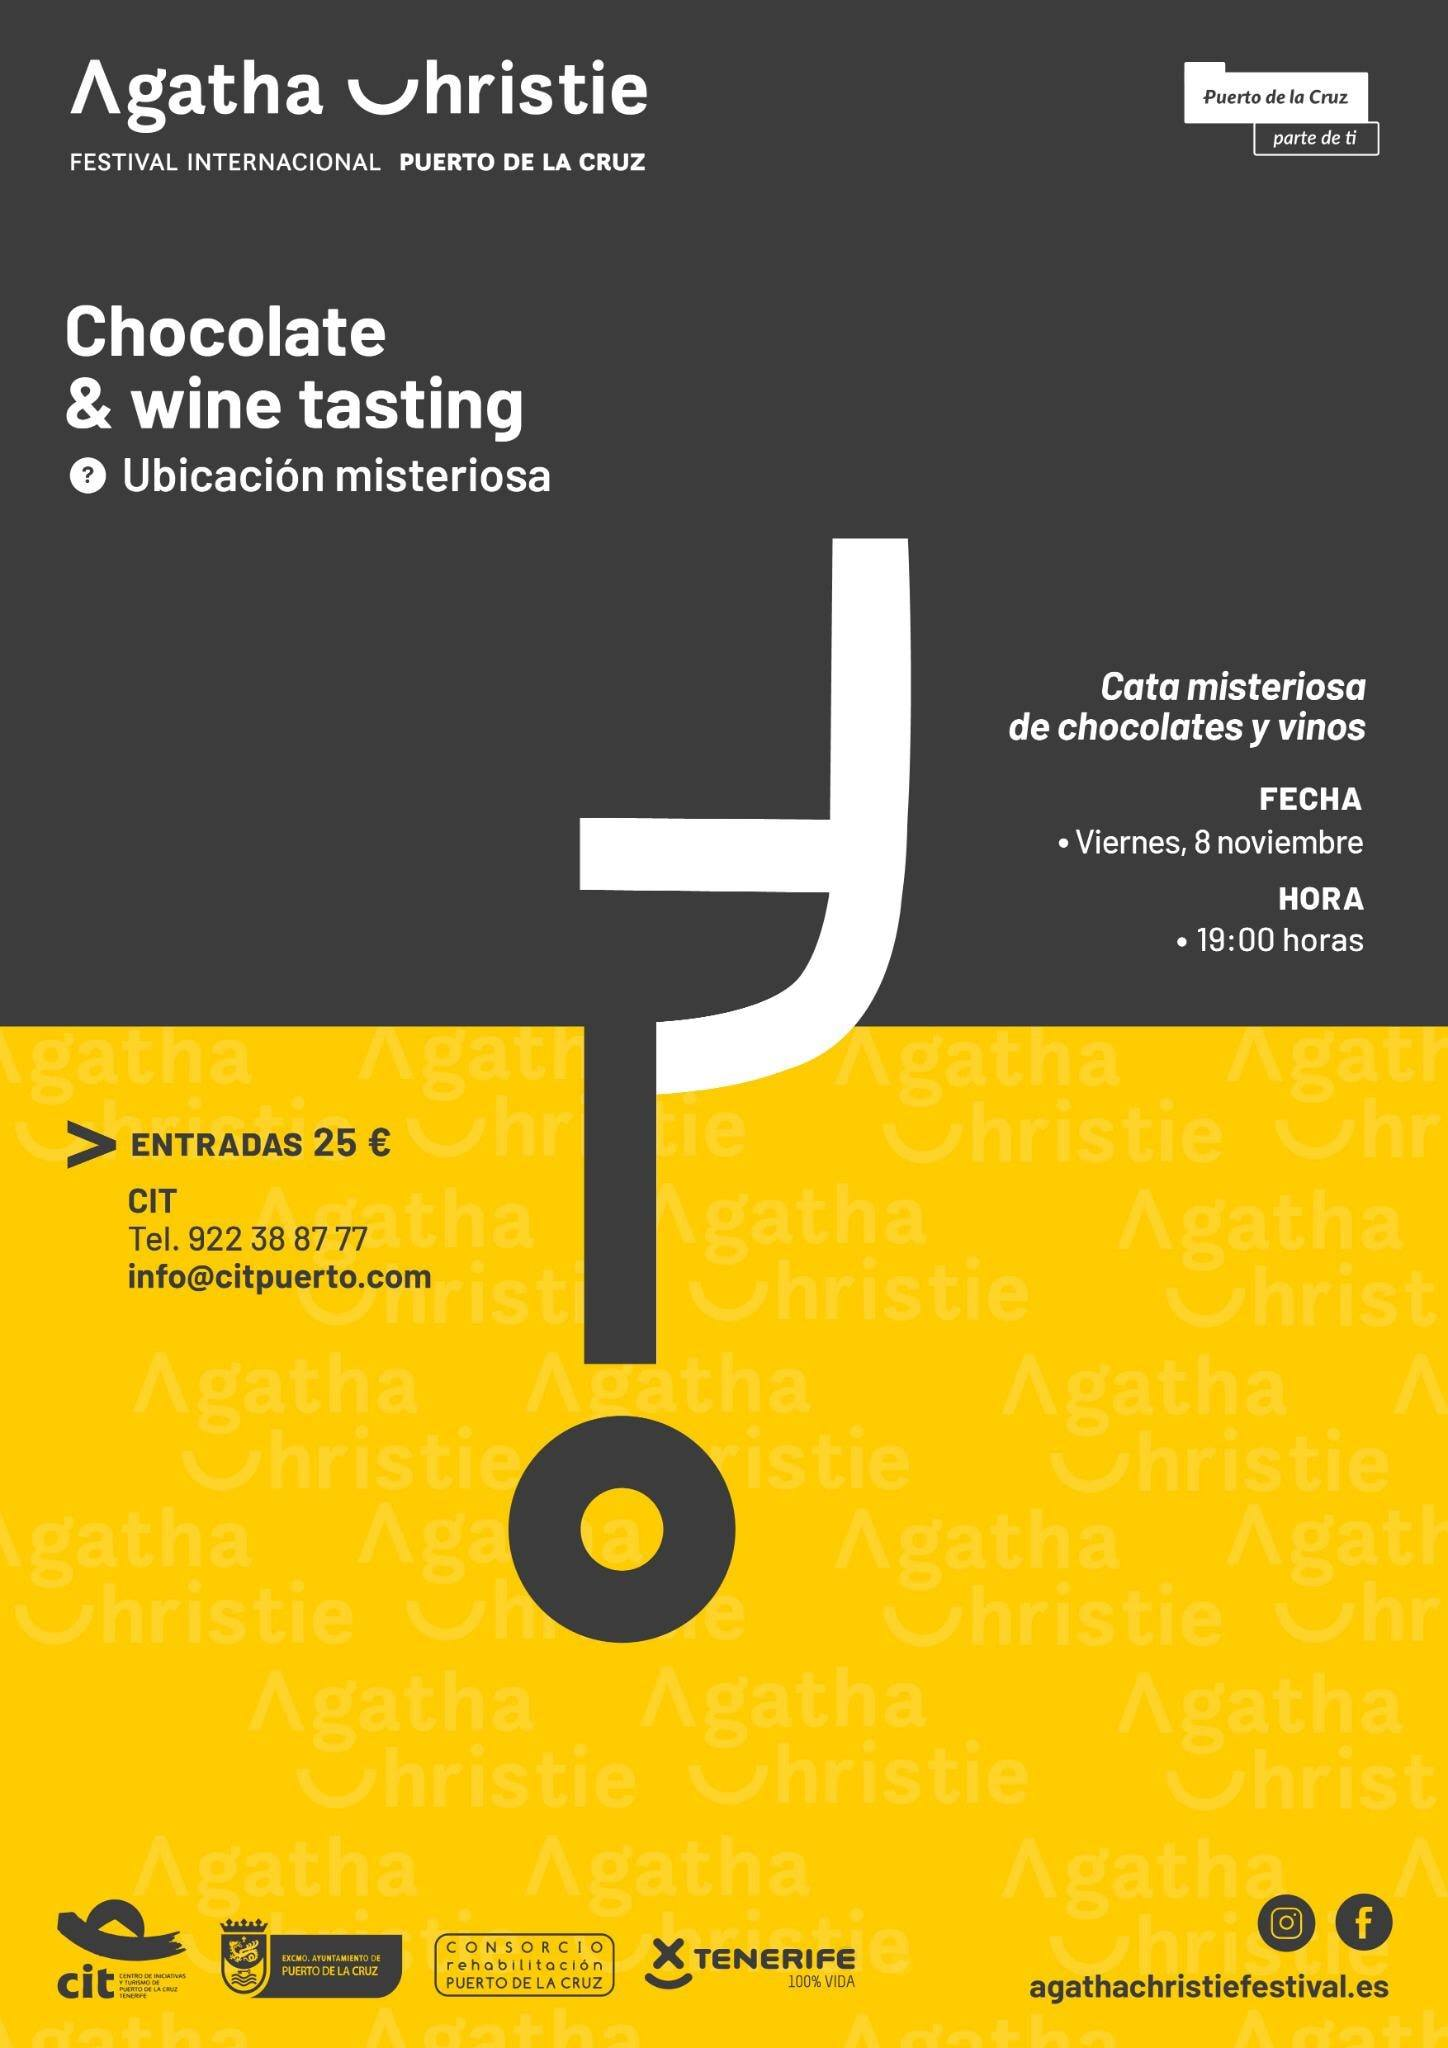 Mysterious Tasting of Chocolates and Wines